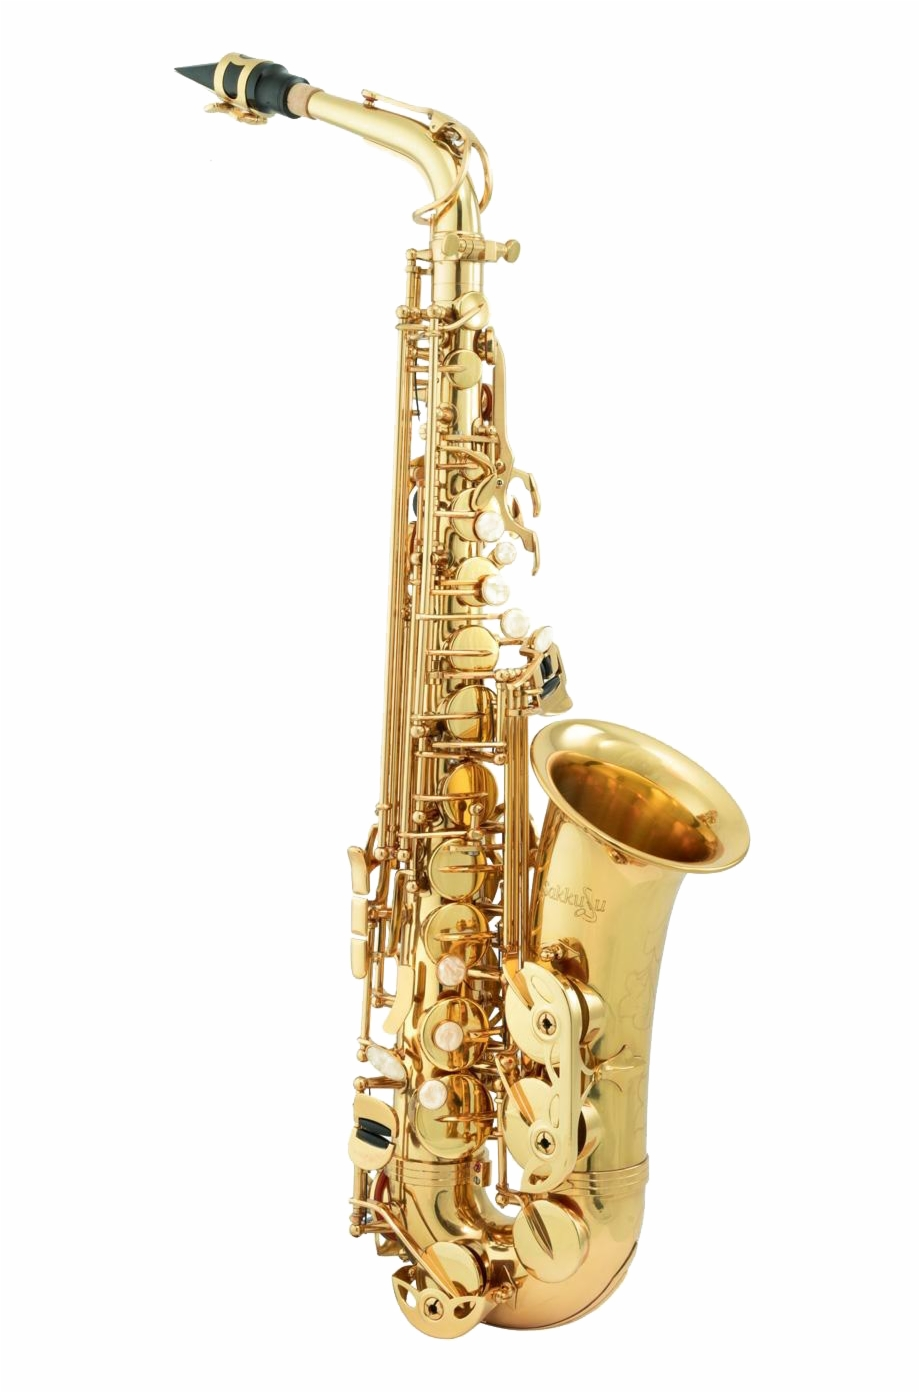 Saxophone Png Image Background.